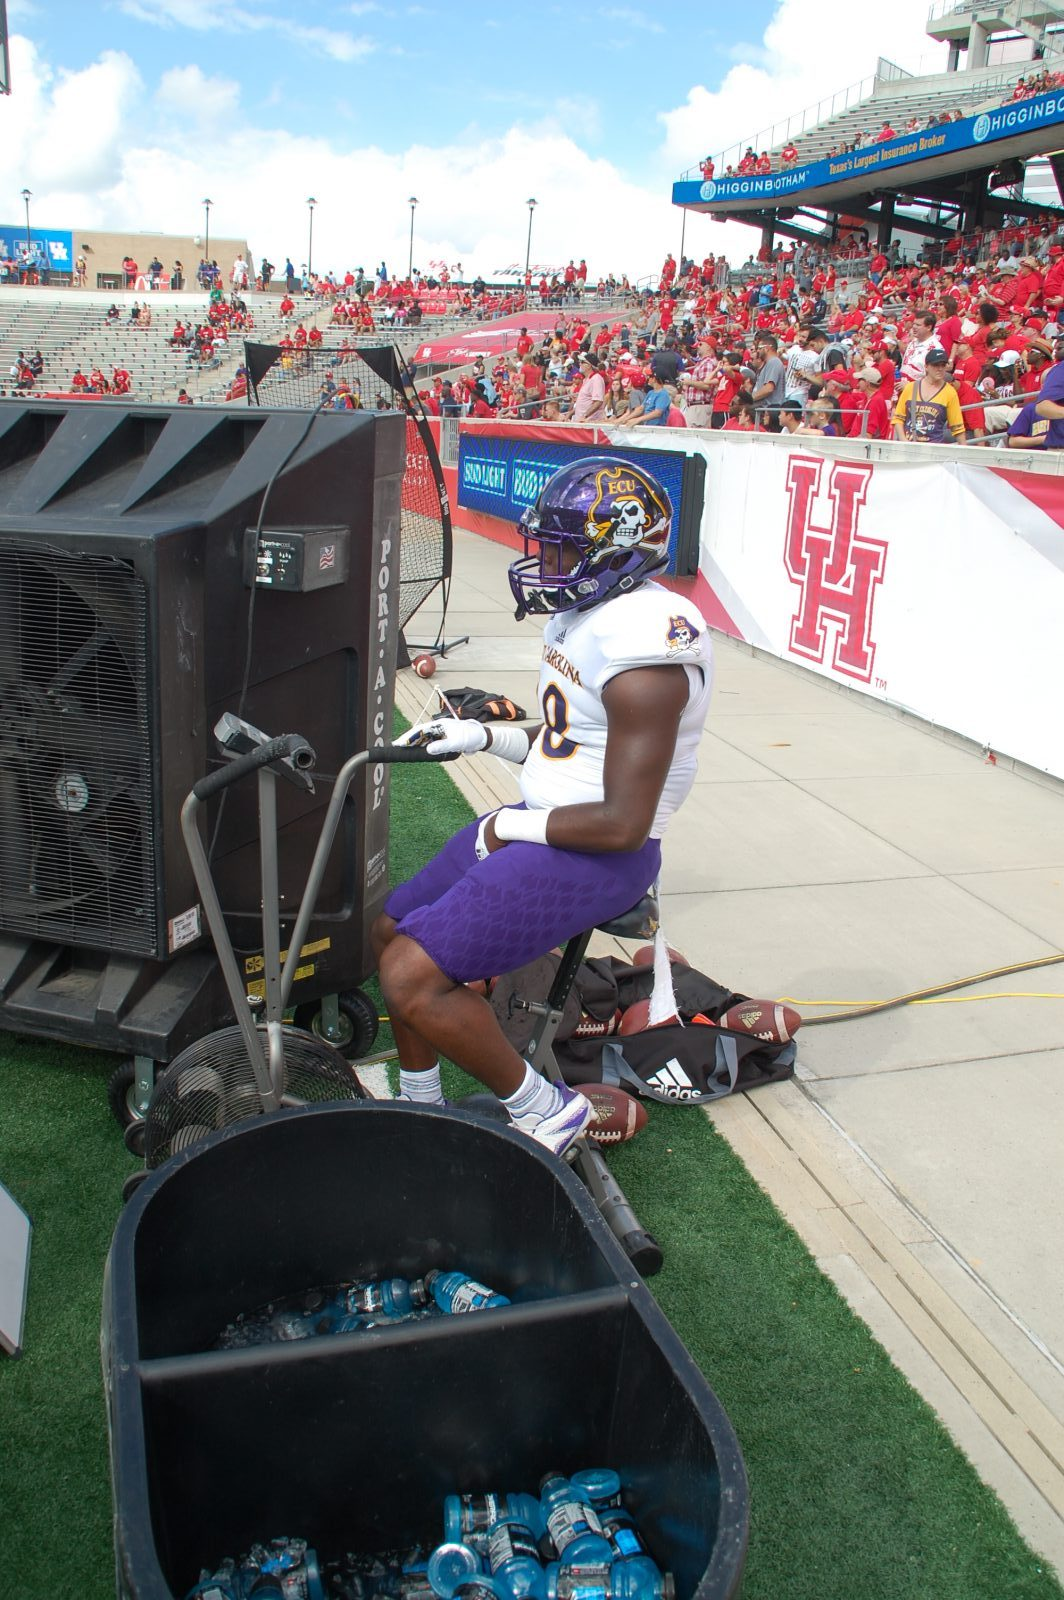 Bruce Bivens, a freshman from Houston who plays on kickoff coverage, keeps his legs fresh. (Photo by Al Myatt)